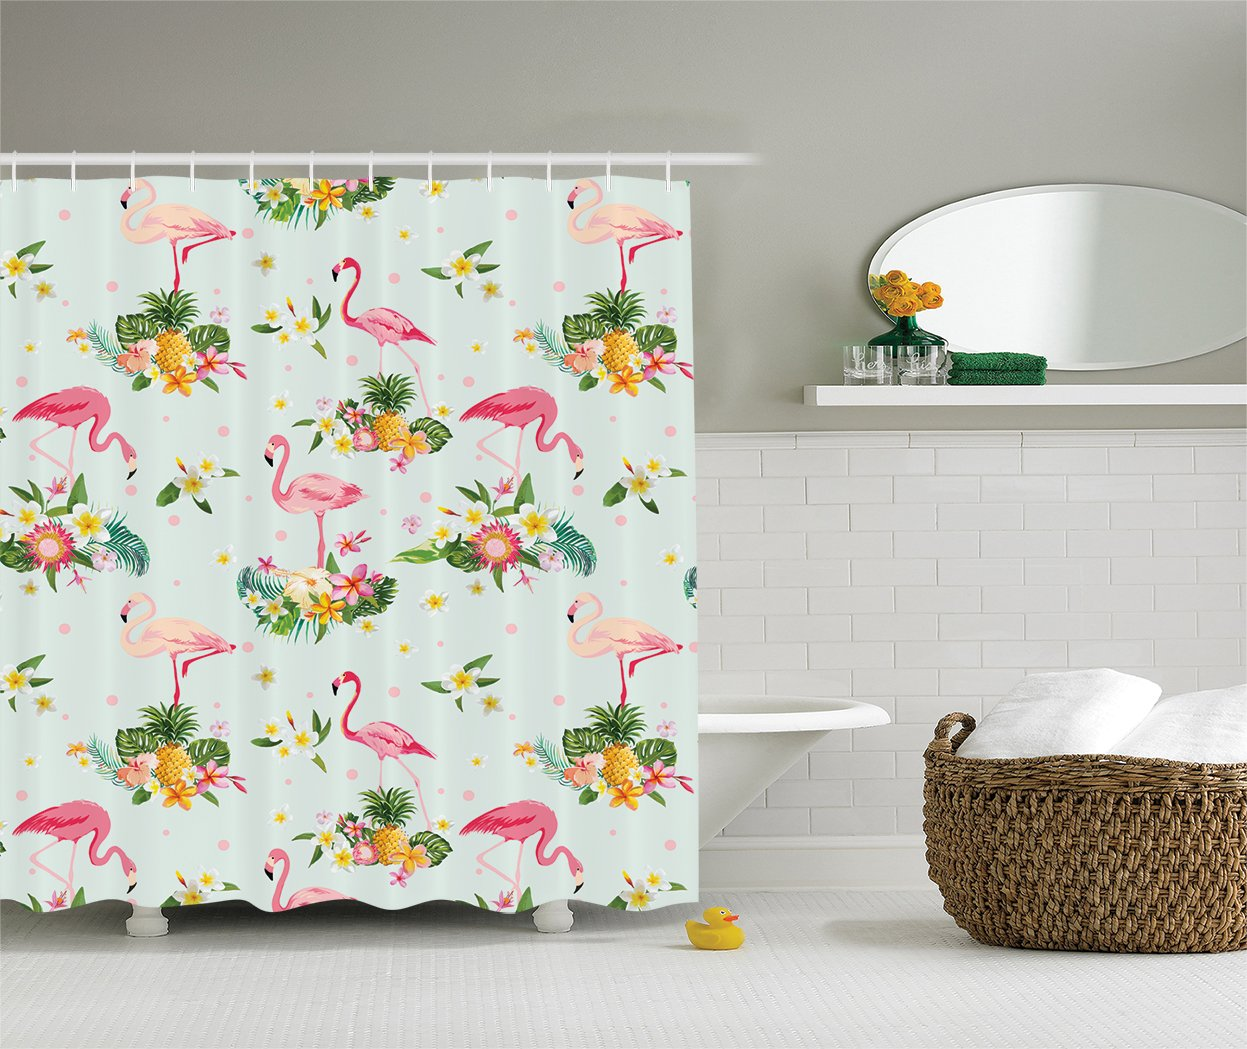 Ambesonne Flamingo Decor Collection, Flamingo Bird and Tropical Flowers Fruits Pineapples Plumeria Vintage Style Art, Polyester Fabric Bathroom Shower Curtain, 75 Inches Long, Pink Salmon Coral Green 0